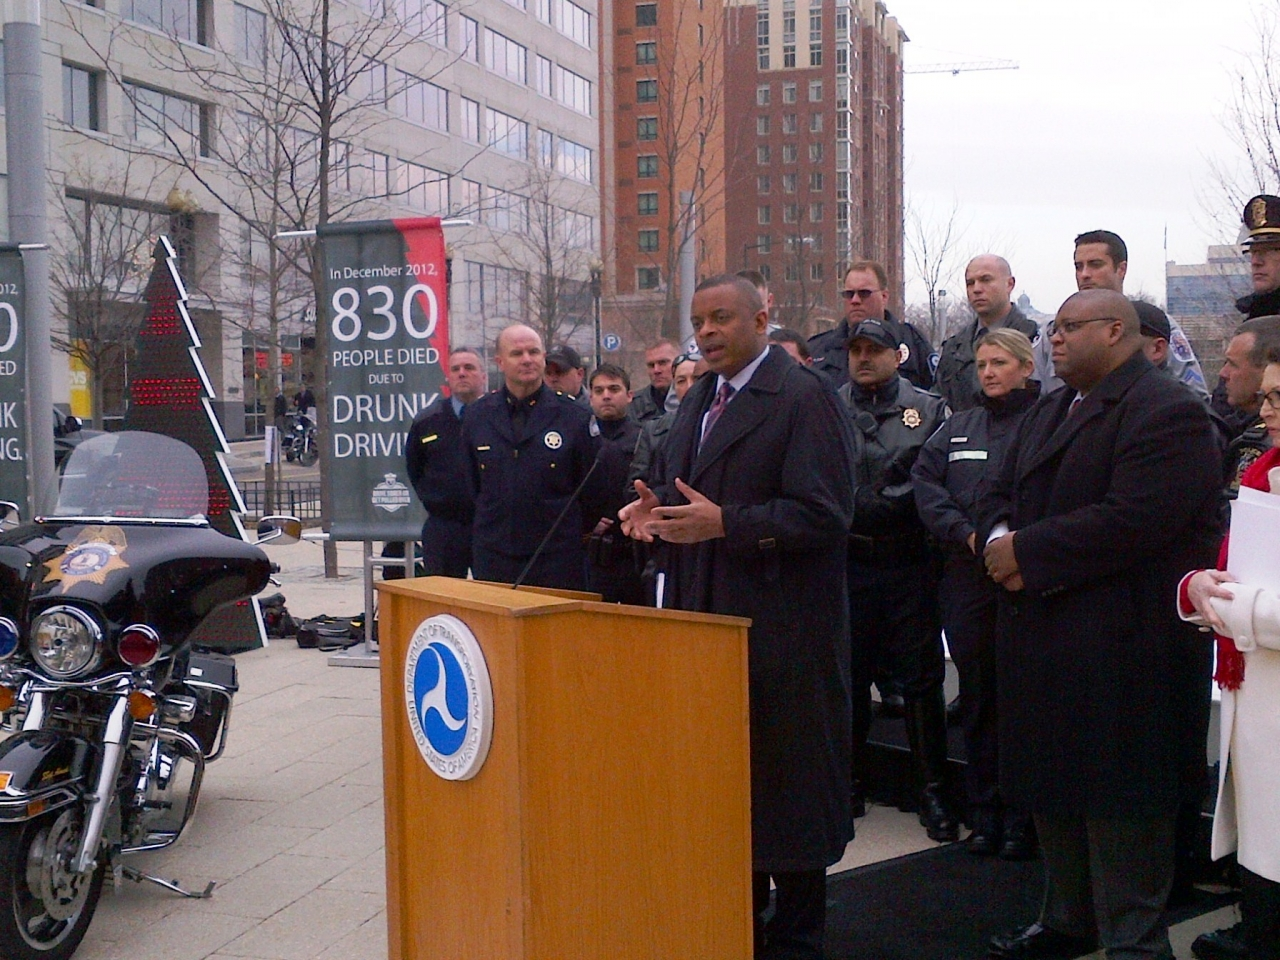 Photo of Secretary Foxx announcing new drunk driving guidelines